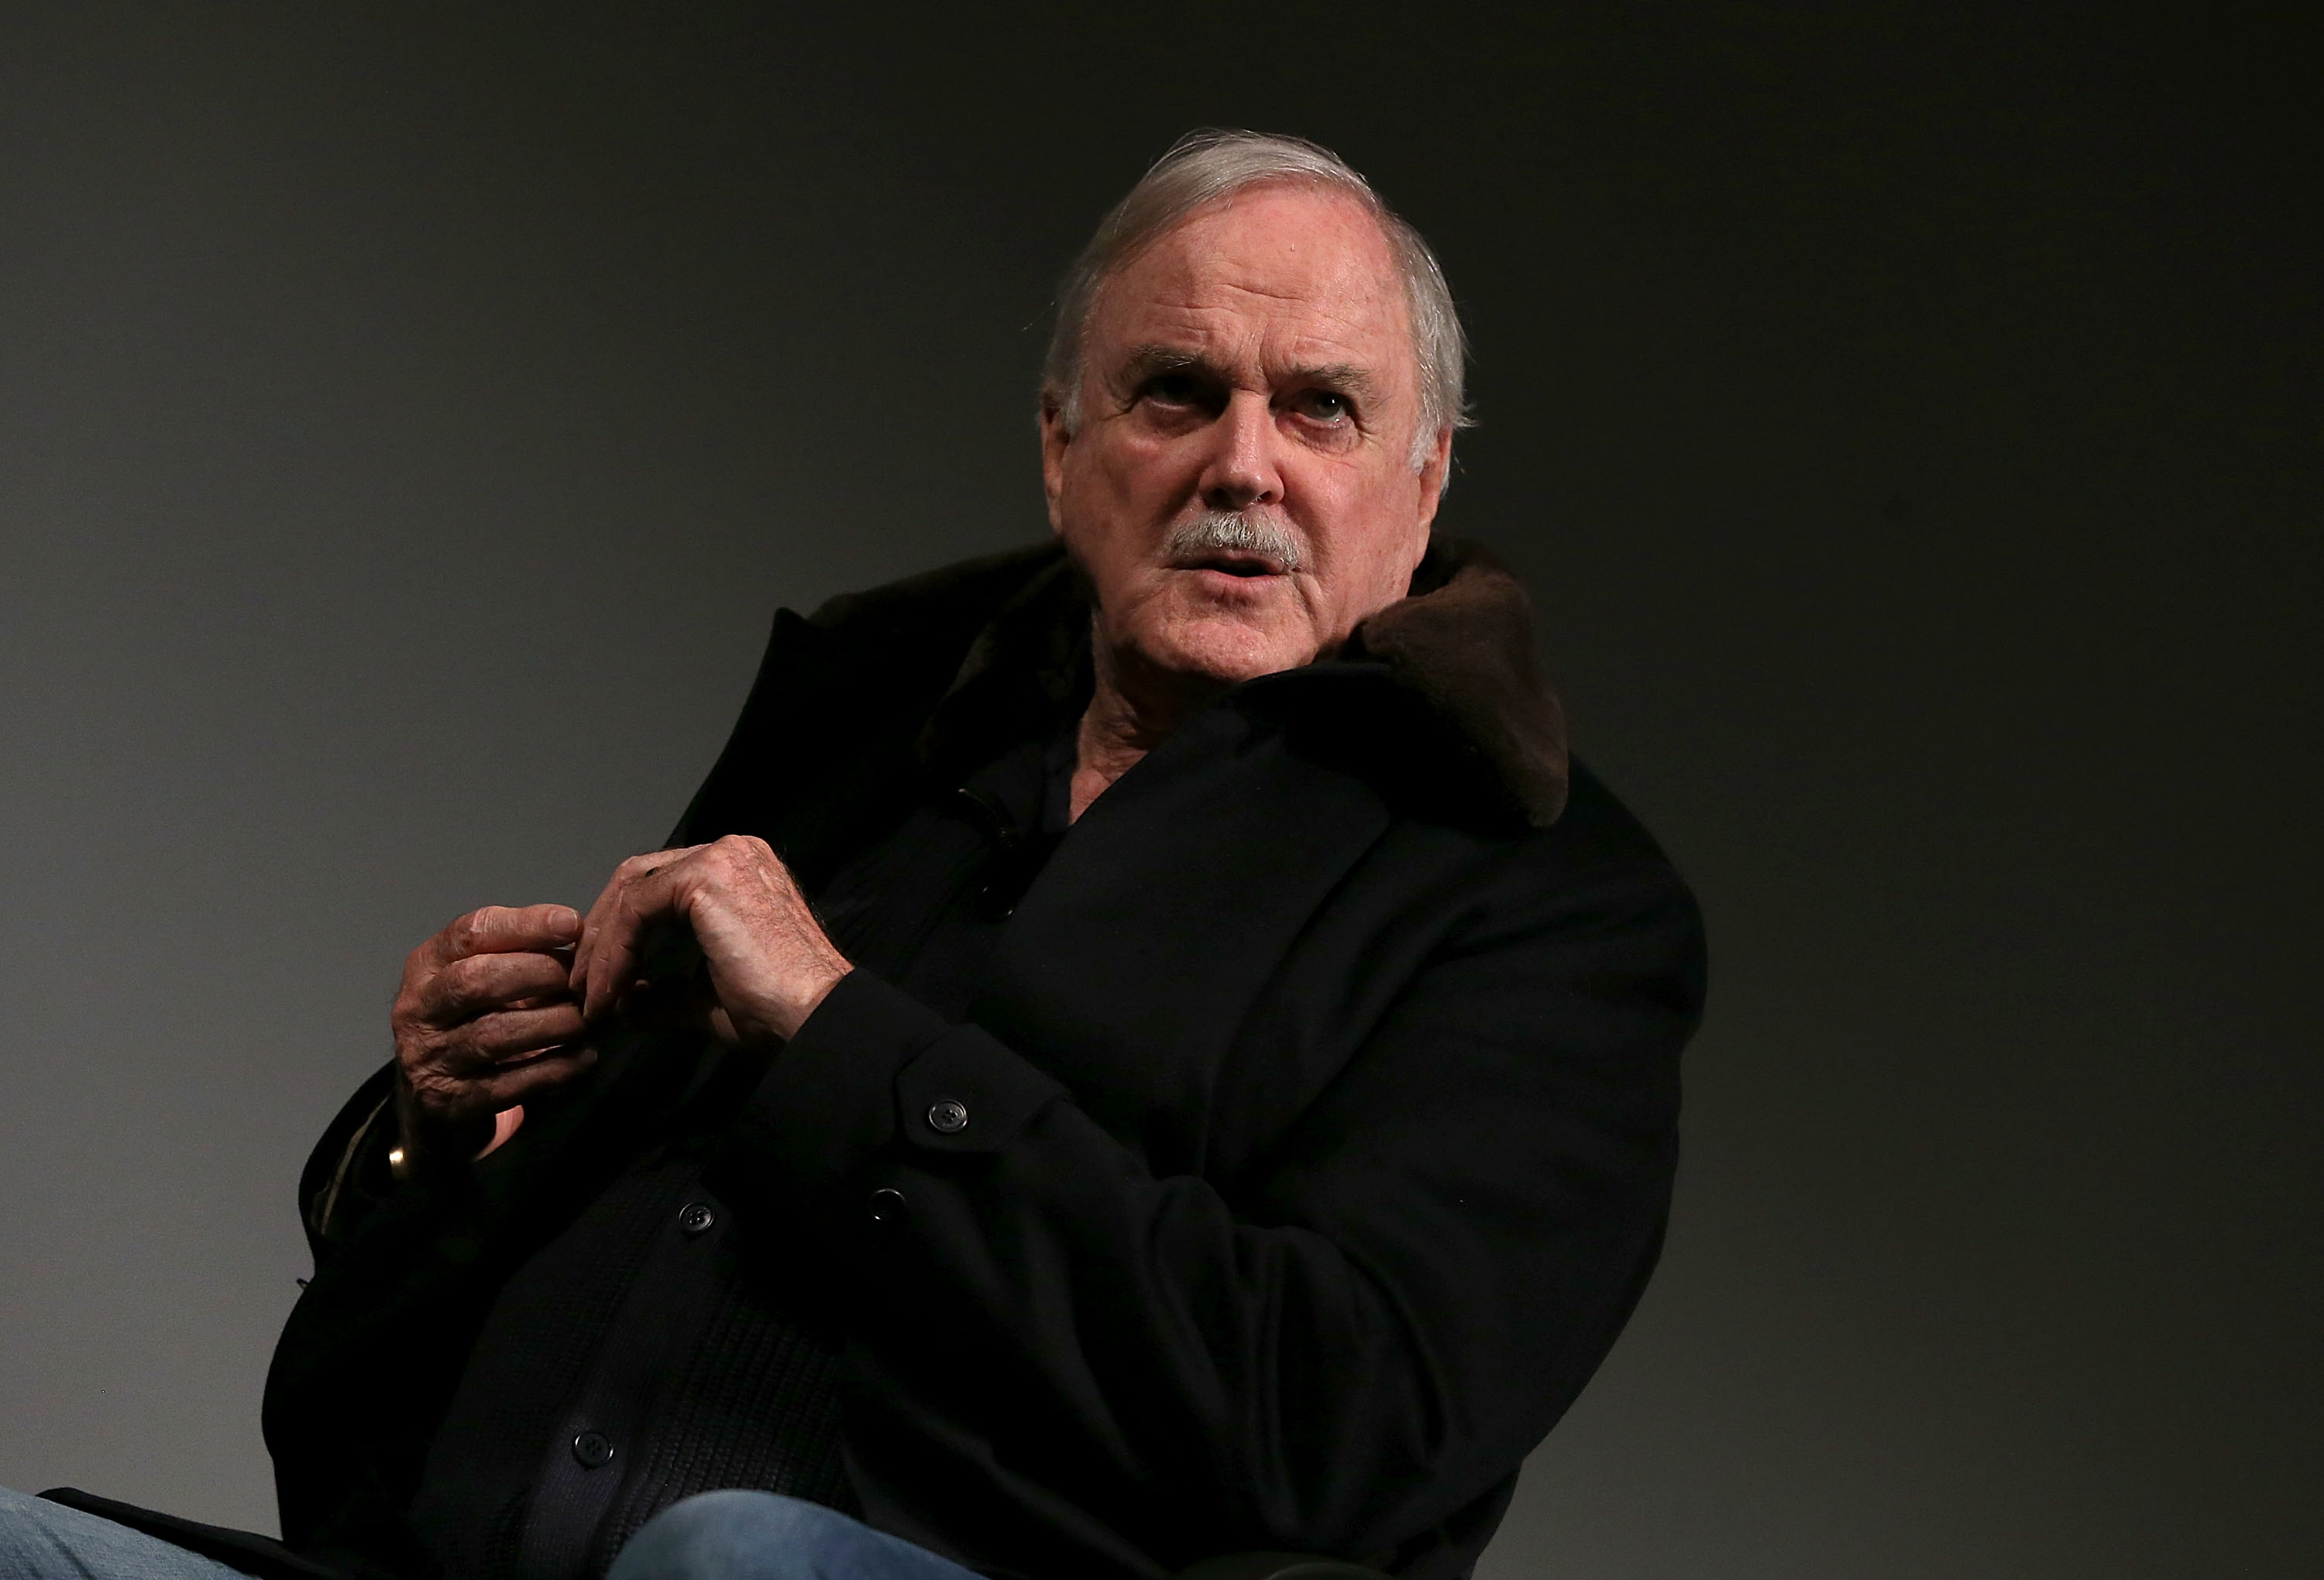 John Cleese 'in talks' for his own new BBC sitcom after saying he'd never go back to TV